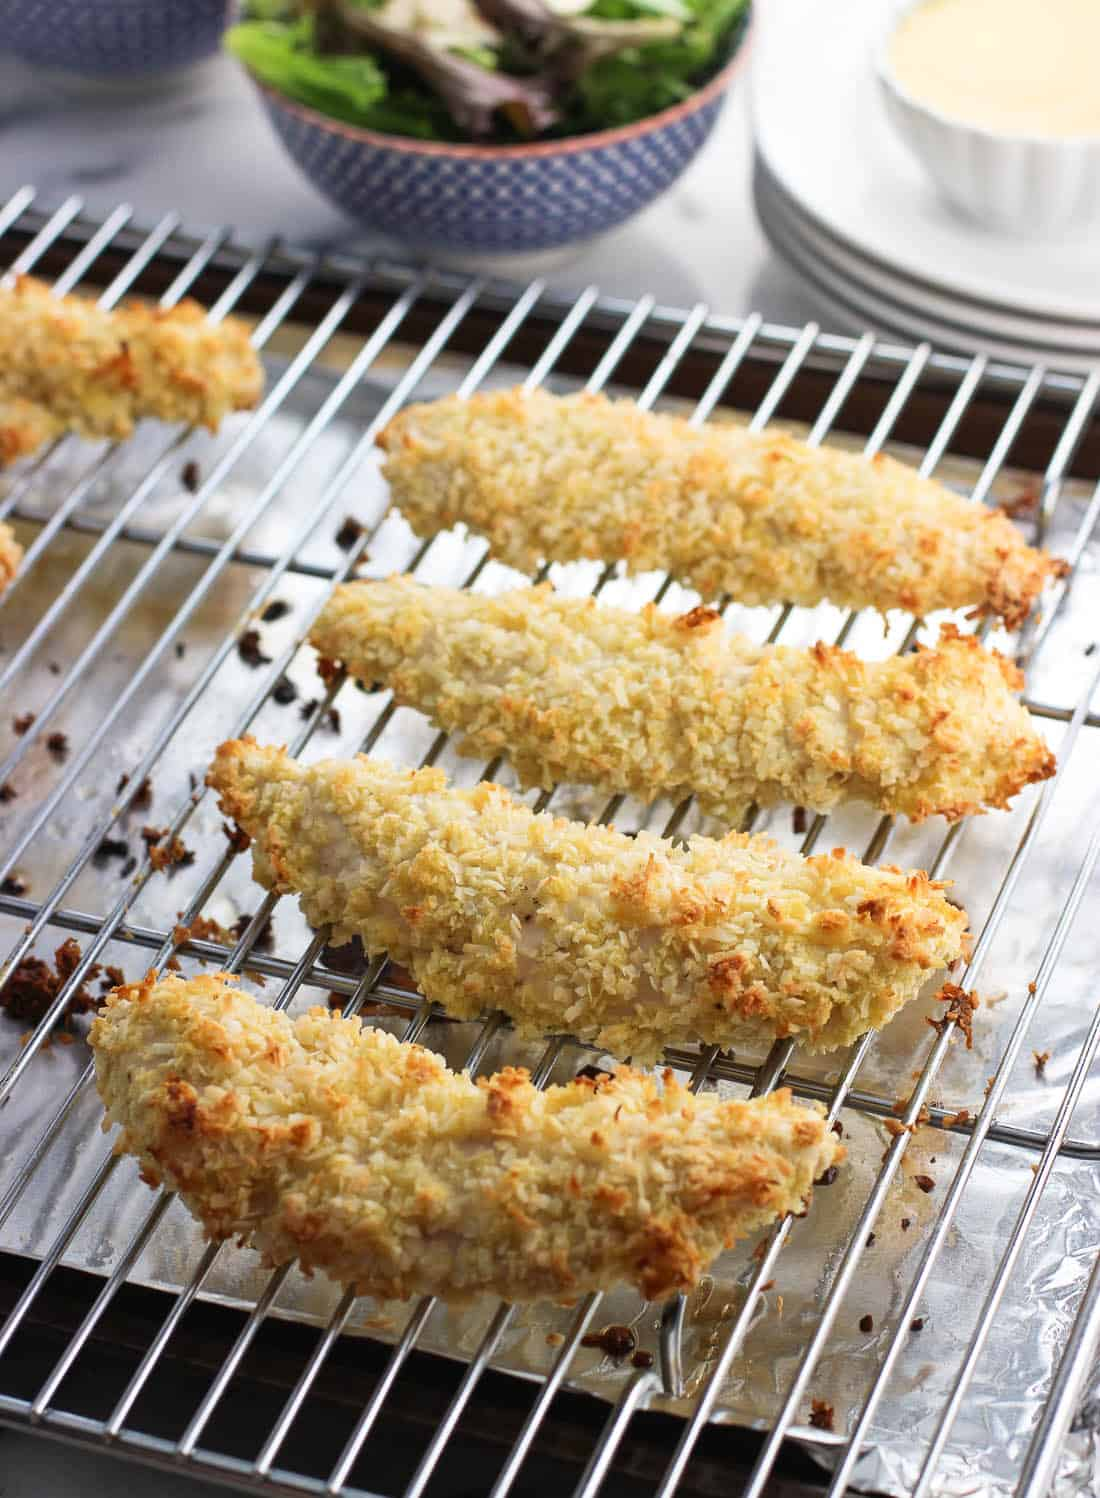 A few steps ensure these easy baked coconut chicken tenders are CRISP for a satisfying, healthier dinner recipe the whole family will love.